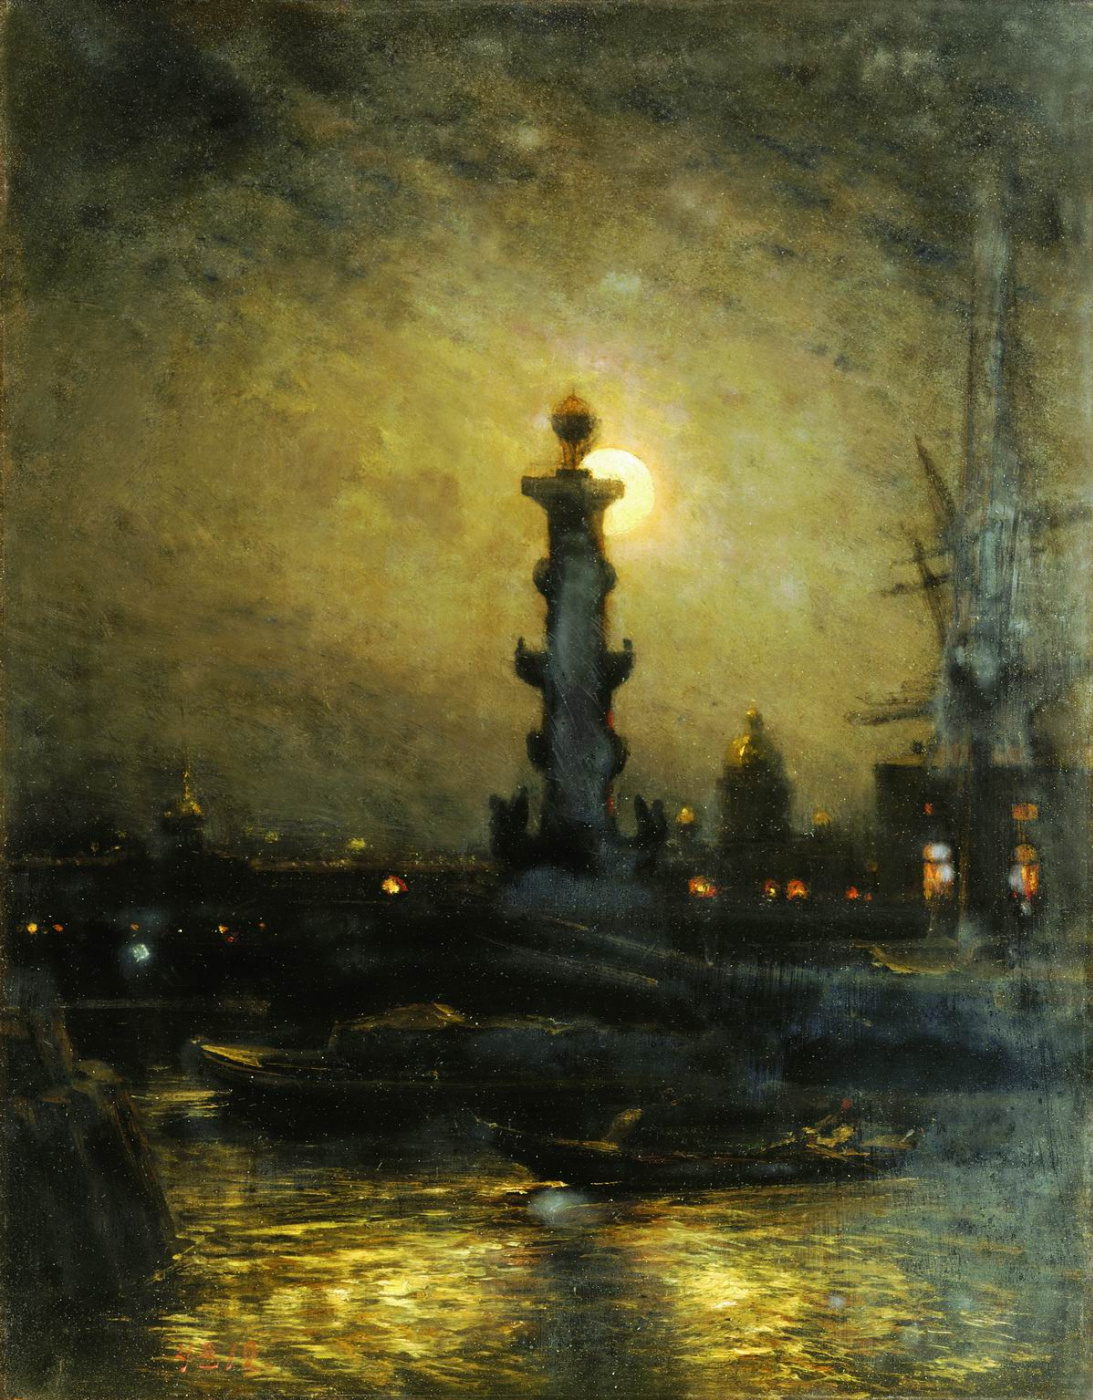 Alexey Petrovich Bogolyubov. Exchange at night. Petersburg